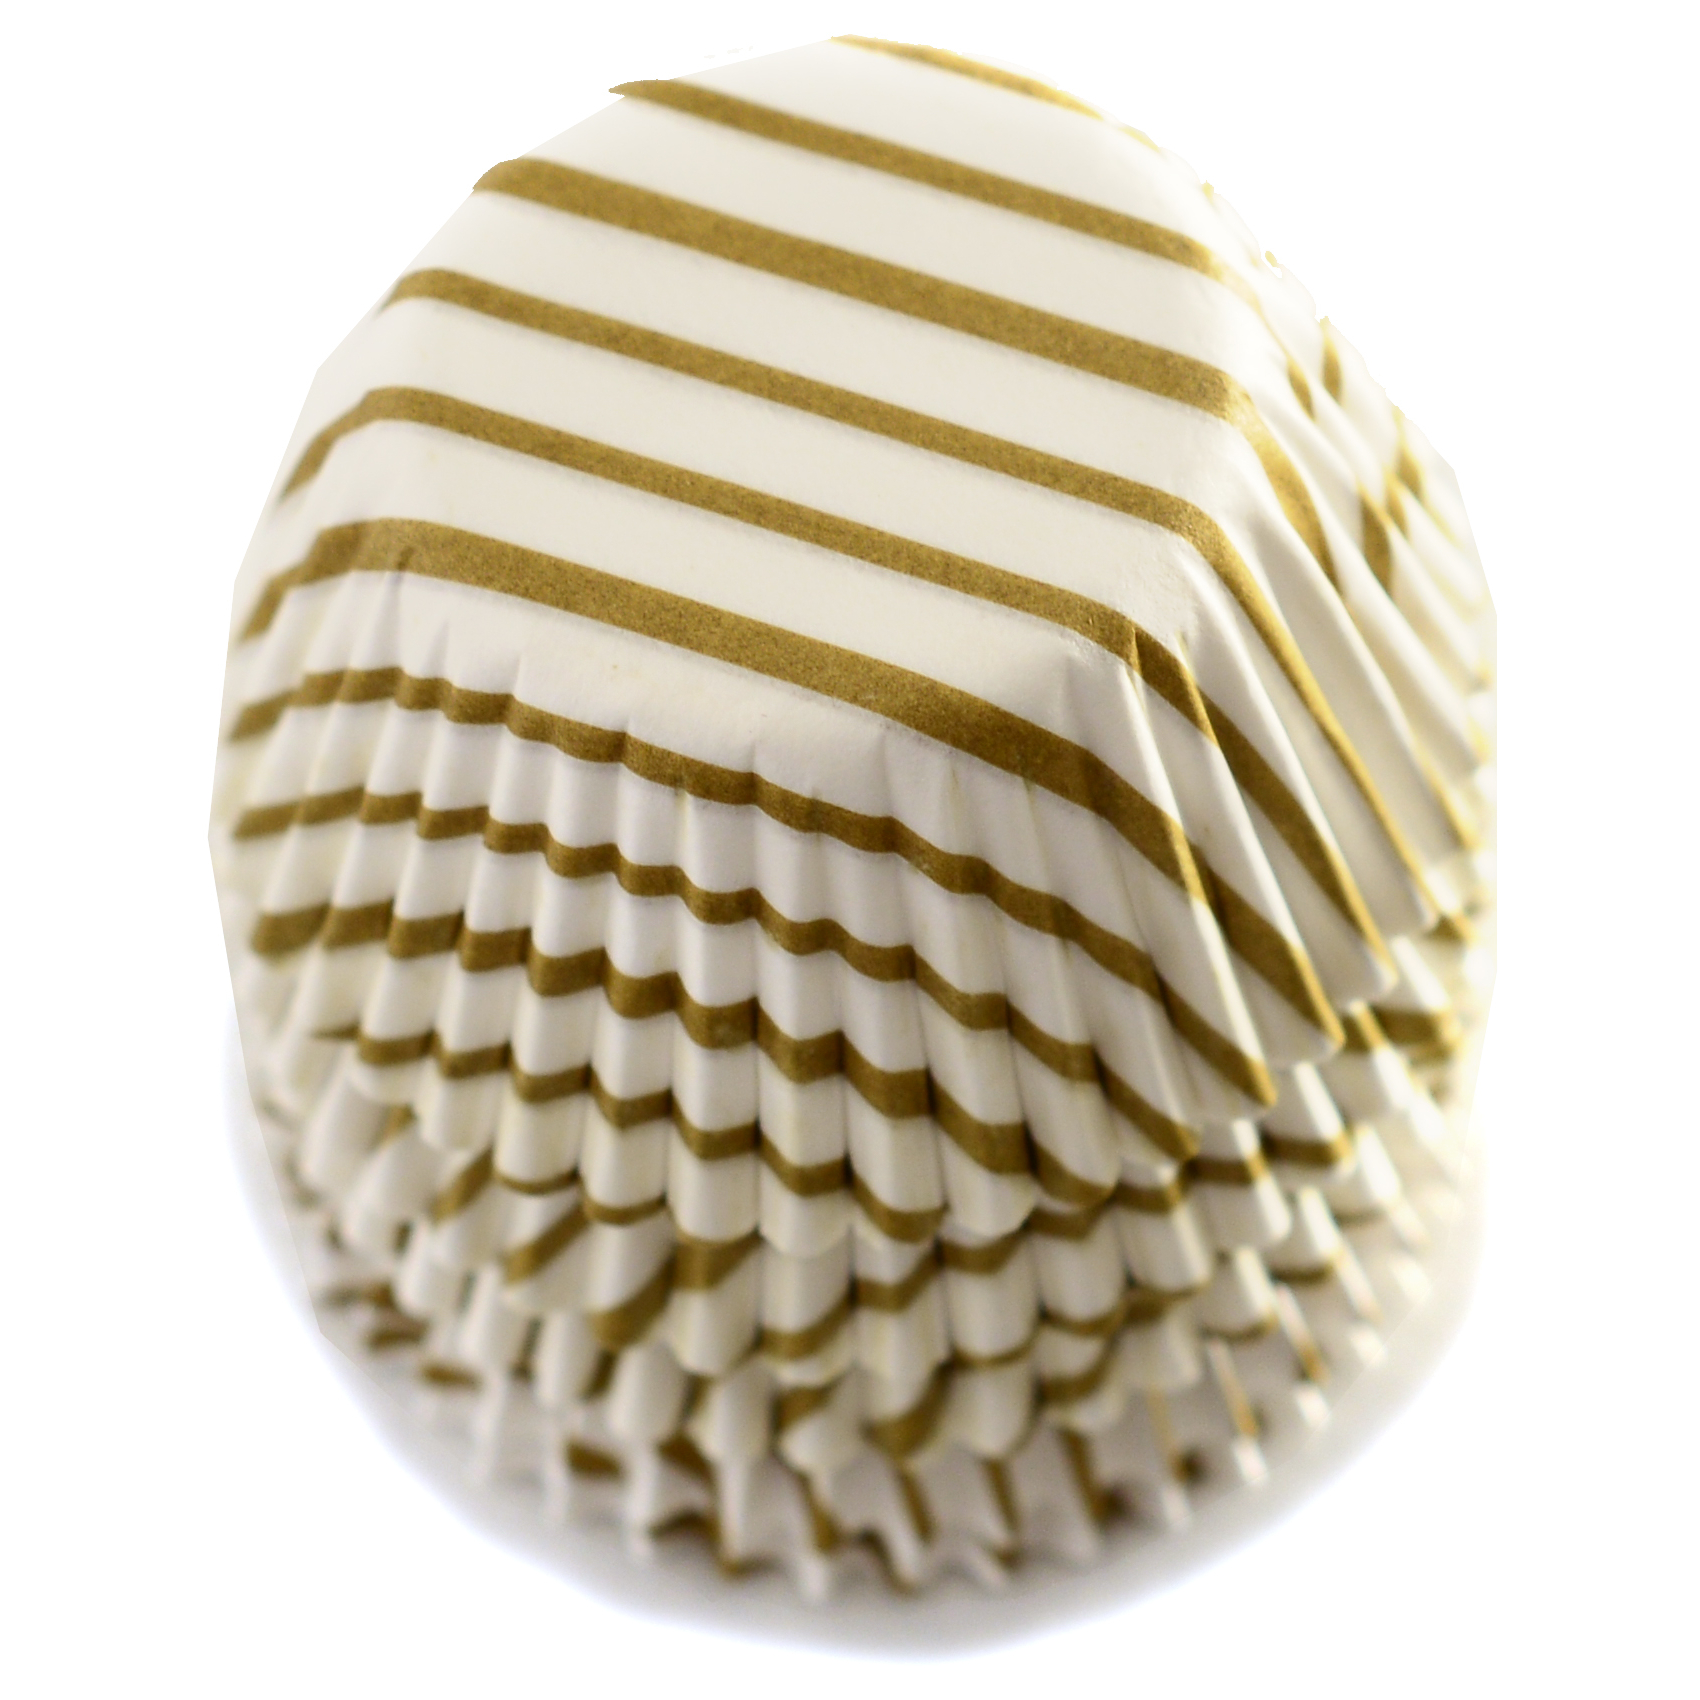 Norpro Gold Swirl Mini Cupcake Liner, Set of 100